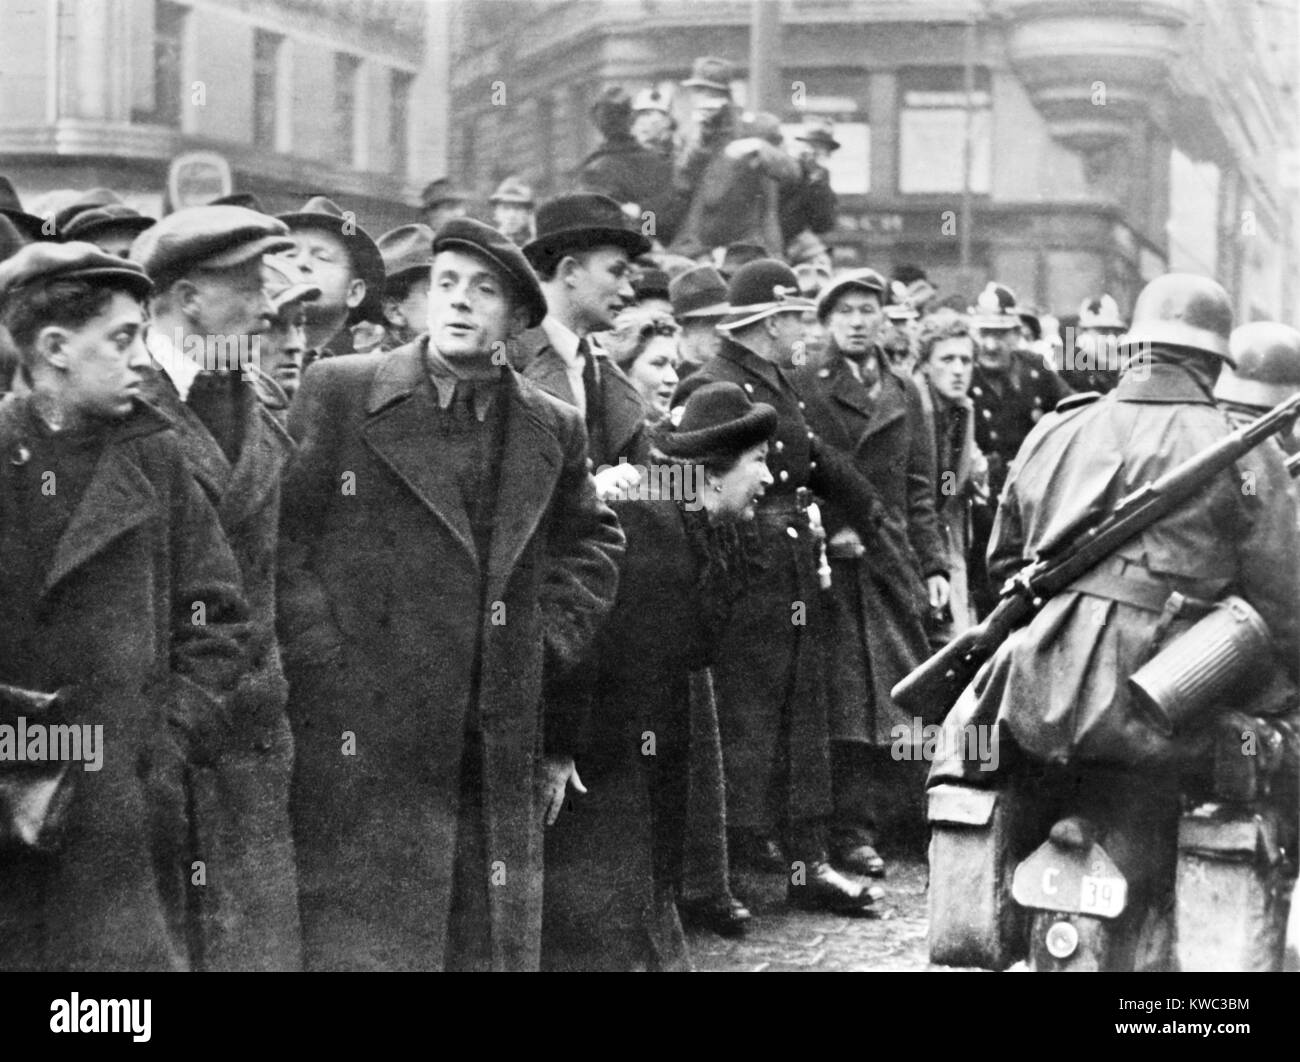 Residents of Prague, Czechoslovakia, watch invading German army, March 1939. (BSLOC_2015_13_32) - Stock Image